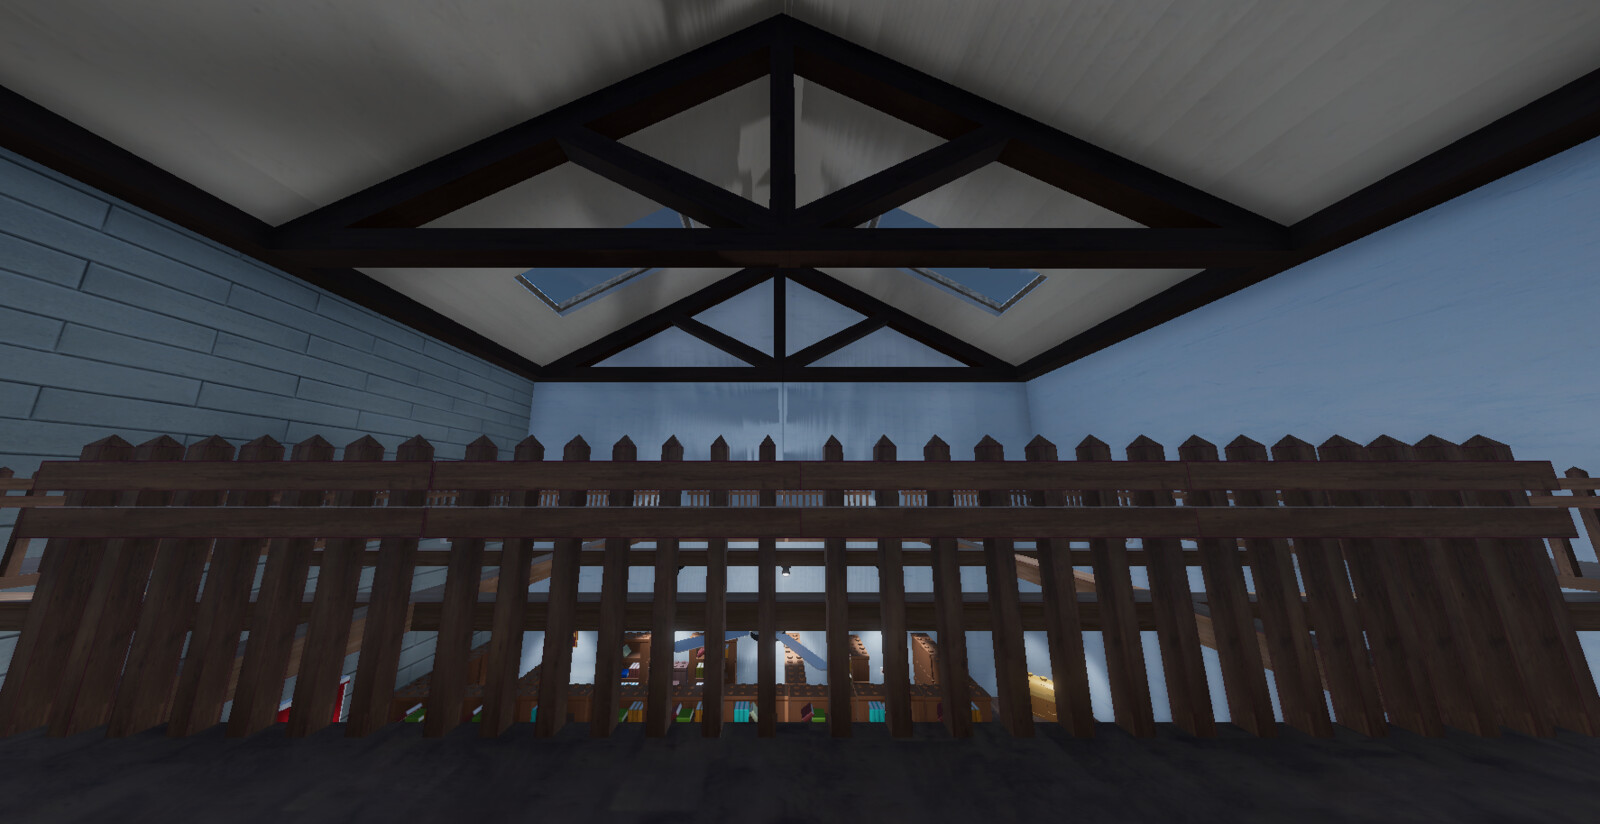 The fencing I textured as well as a closer look at the roof.